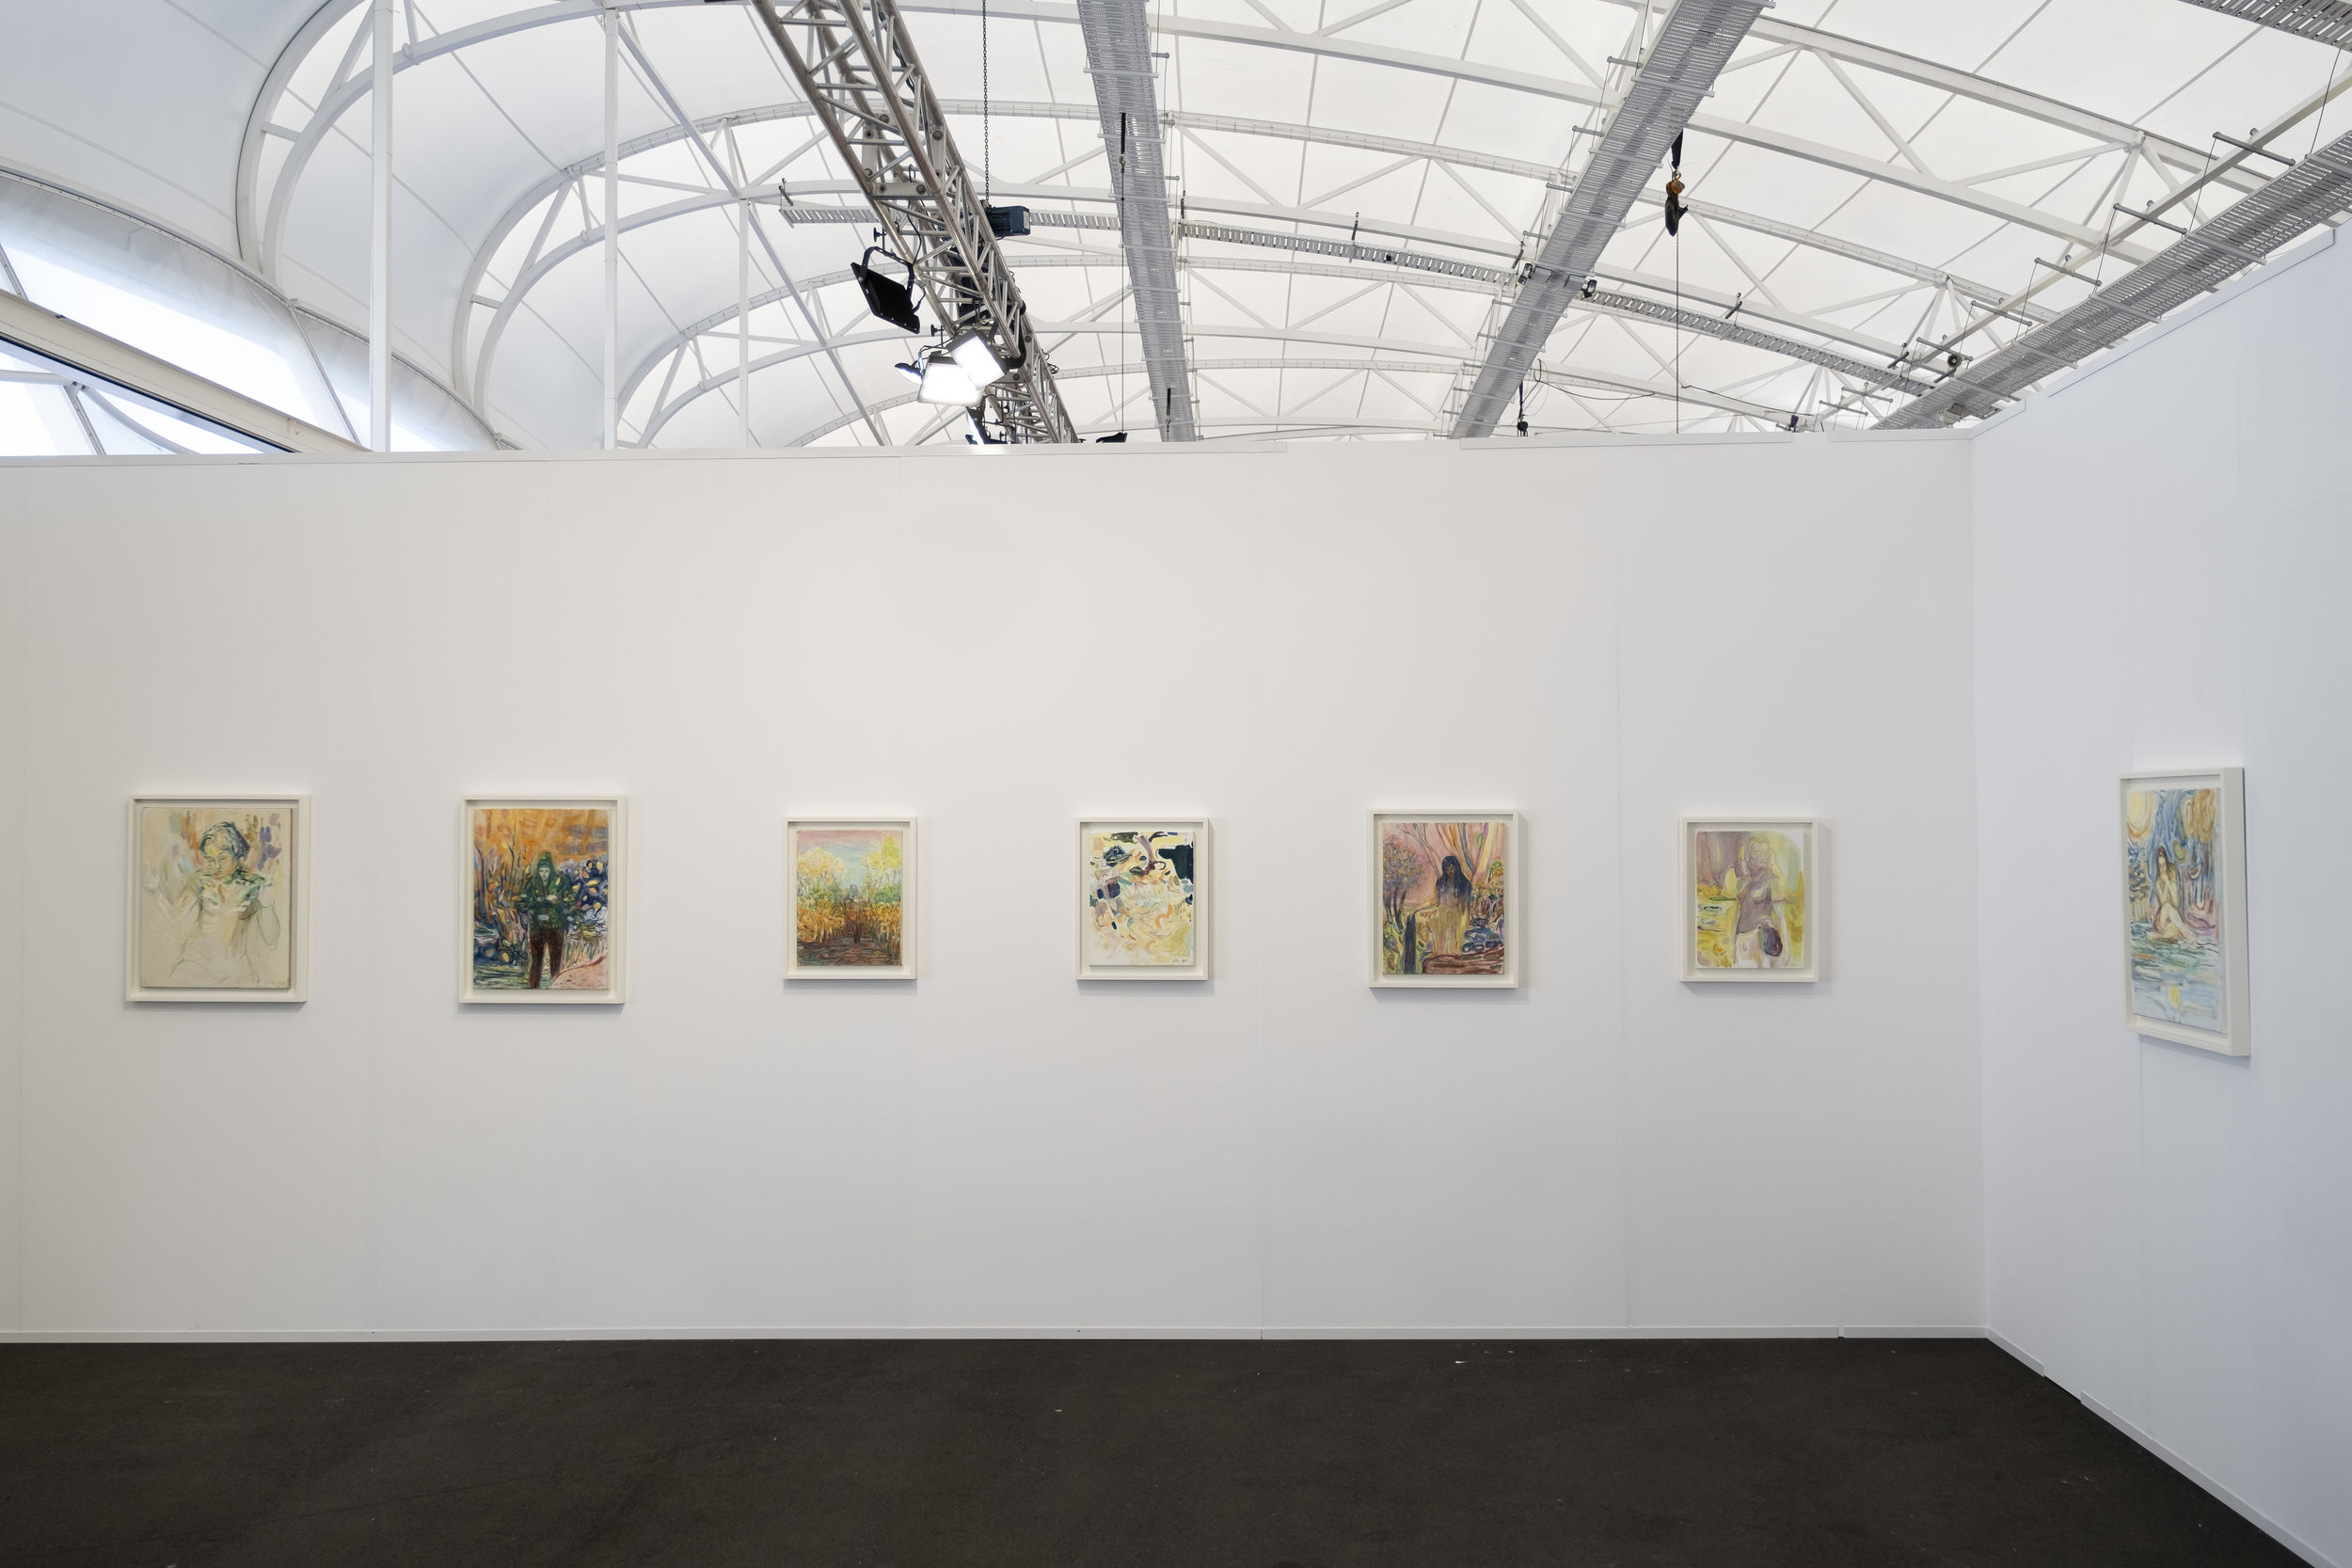 Auckland Art Fair 2019 , installation view, The Cloud, Auckland, May 2019, featuring the work of Séraphine Pick; image courtesy Michael Lett, Auckland; photo: Josef Scott